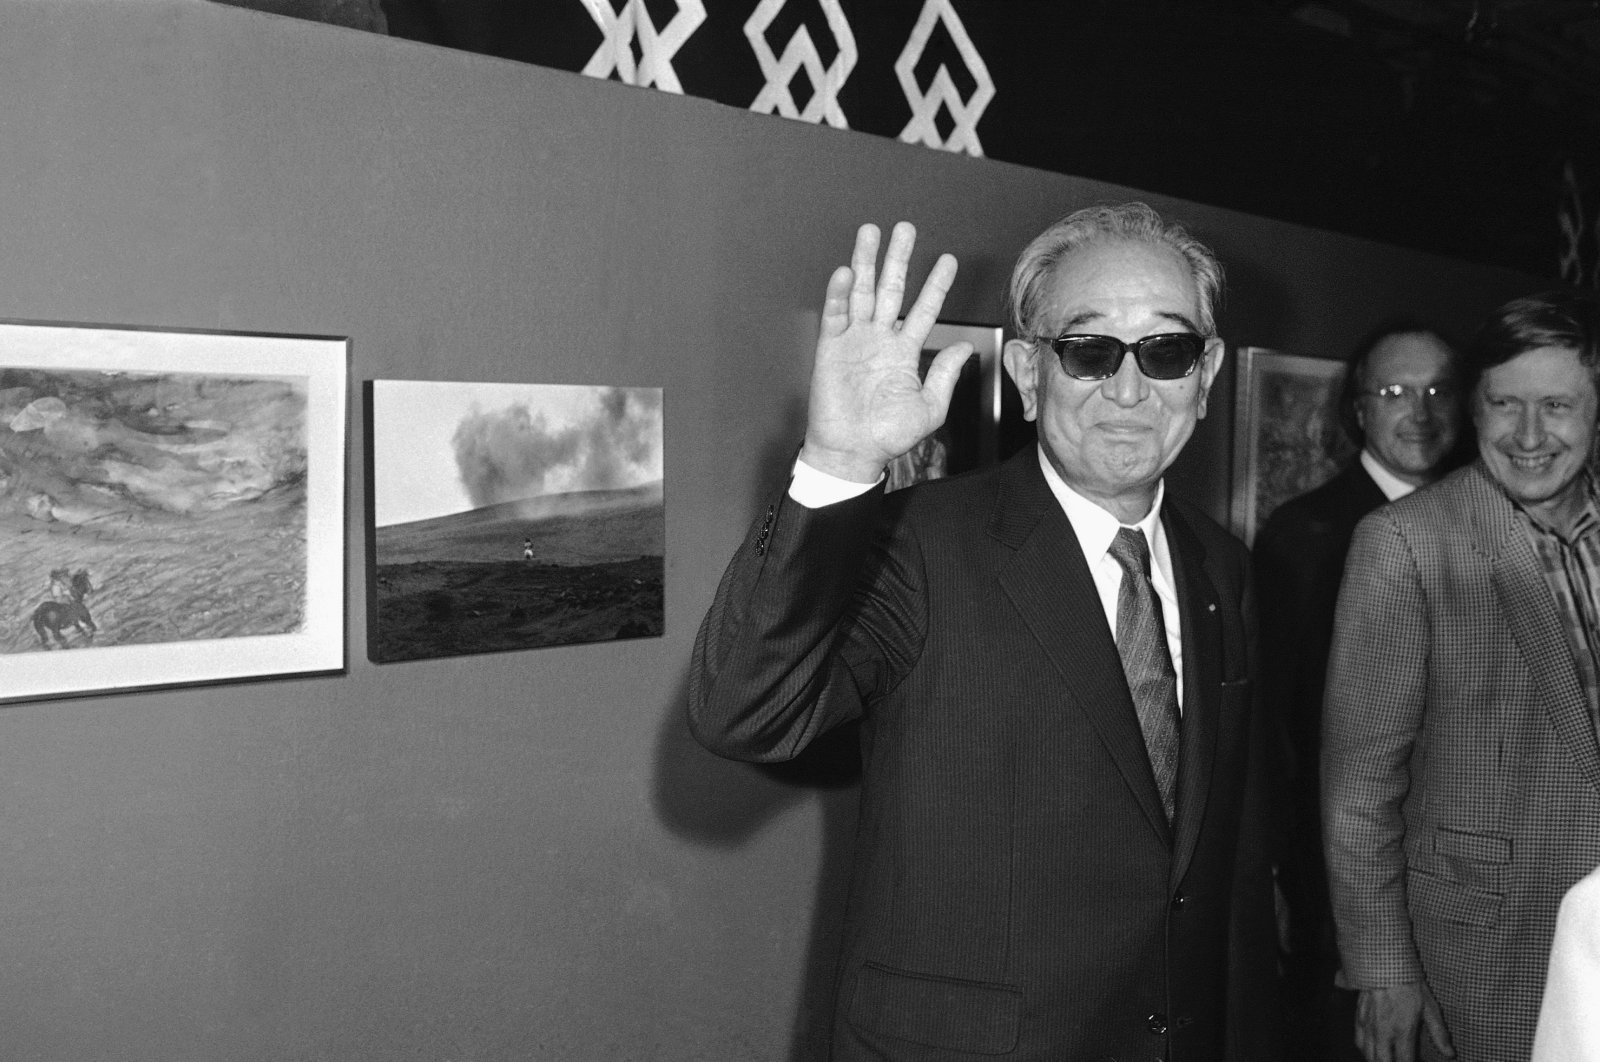 """In this Sept. 19, 1985 photo, Japanese movie director Akira Kurosawa salutes the photographers when visiting the exhibition """"About Ran"""" held at Paris Georges Pompidou National Center for Art and Culture. (AP Photo)"""